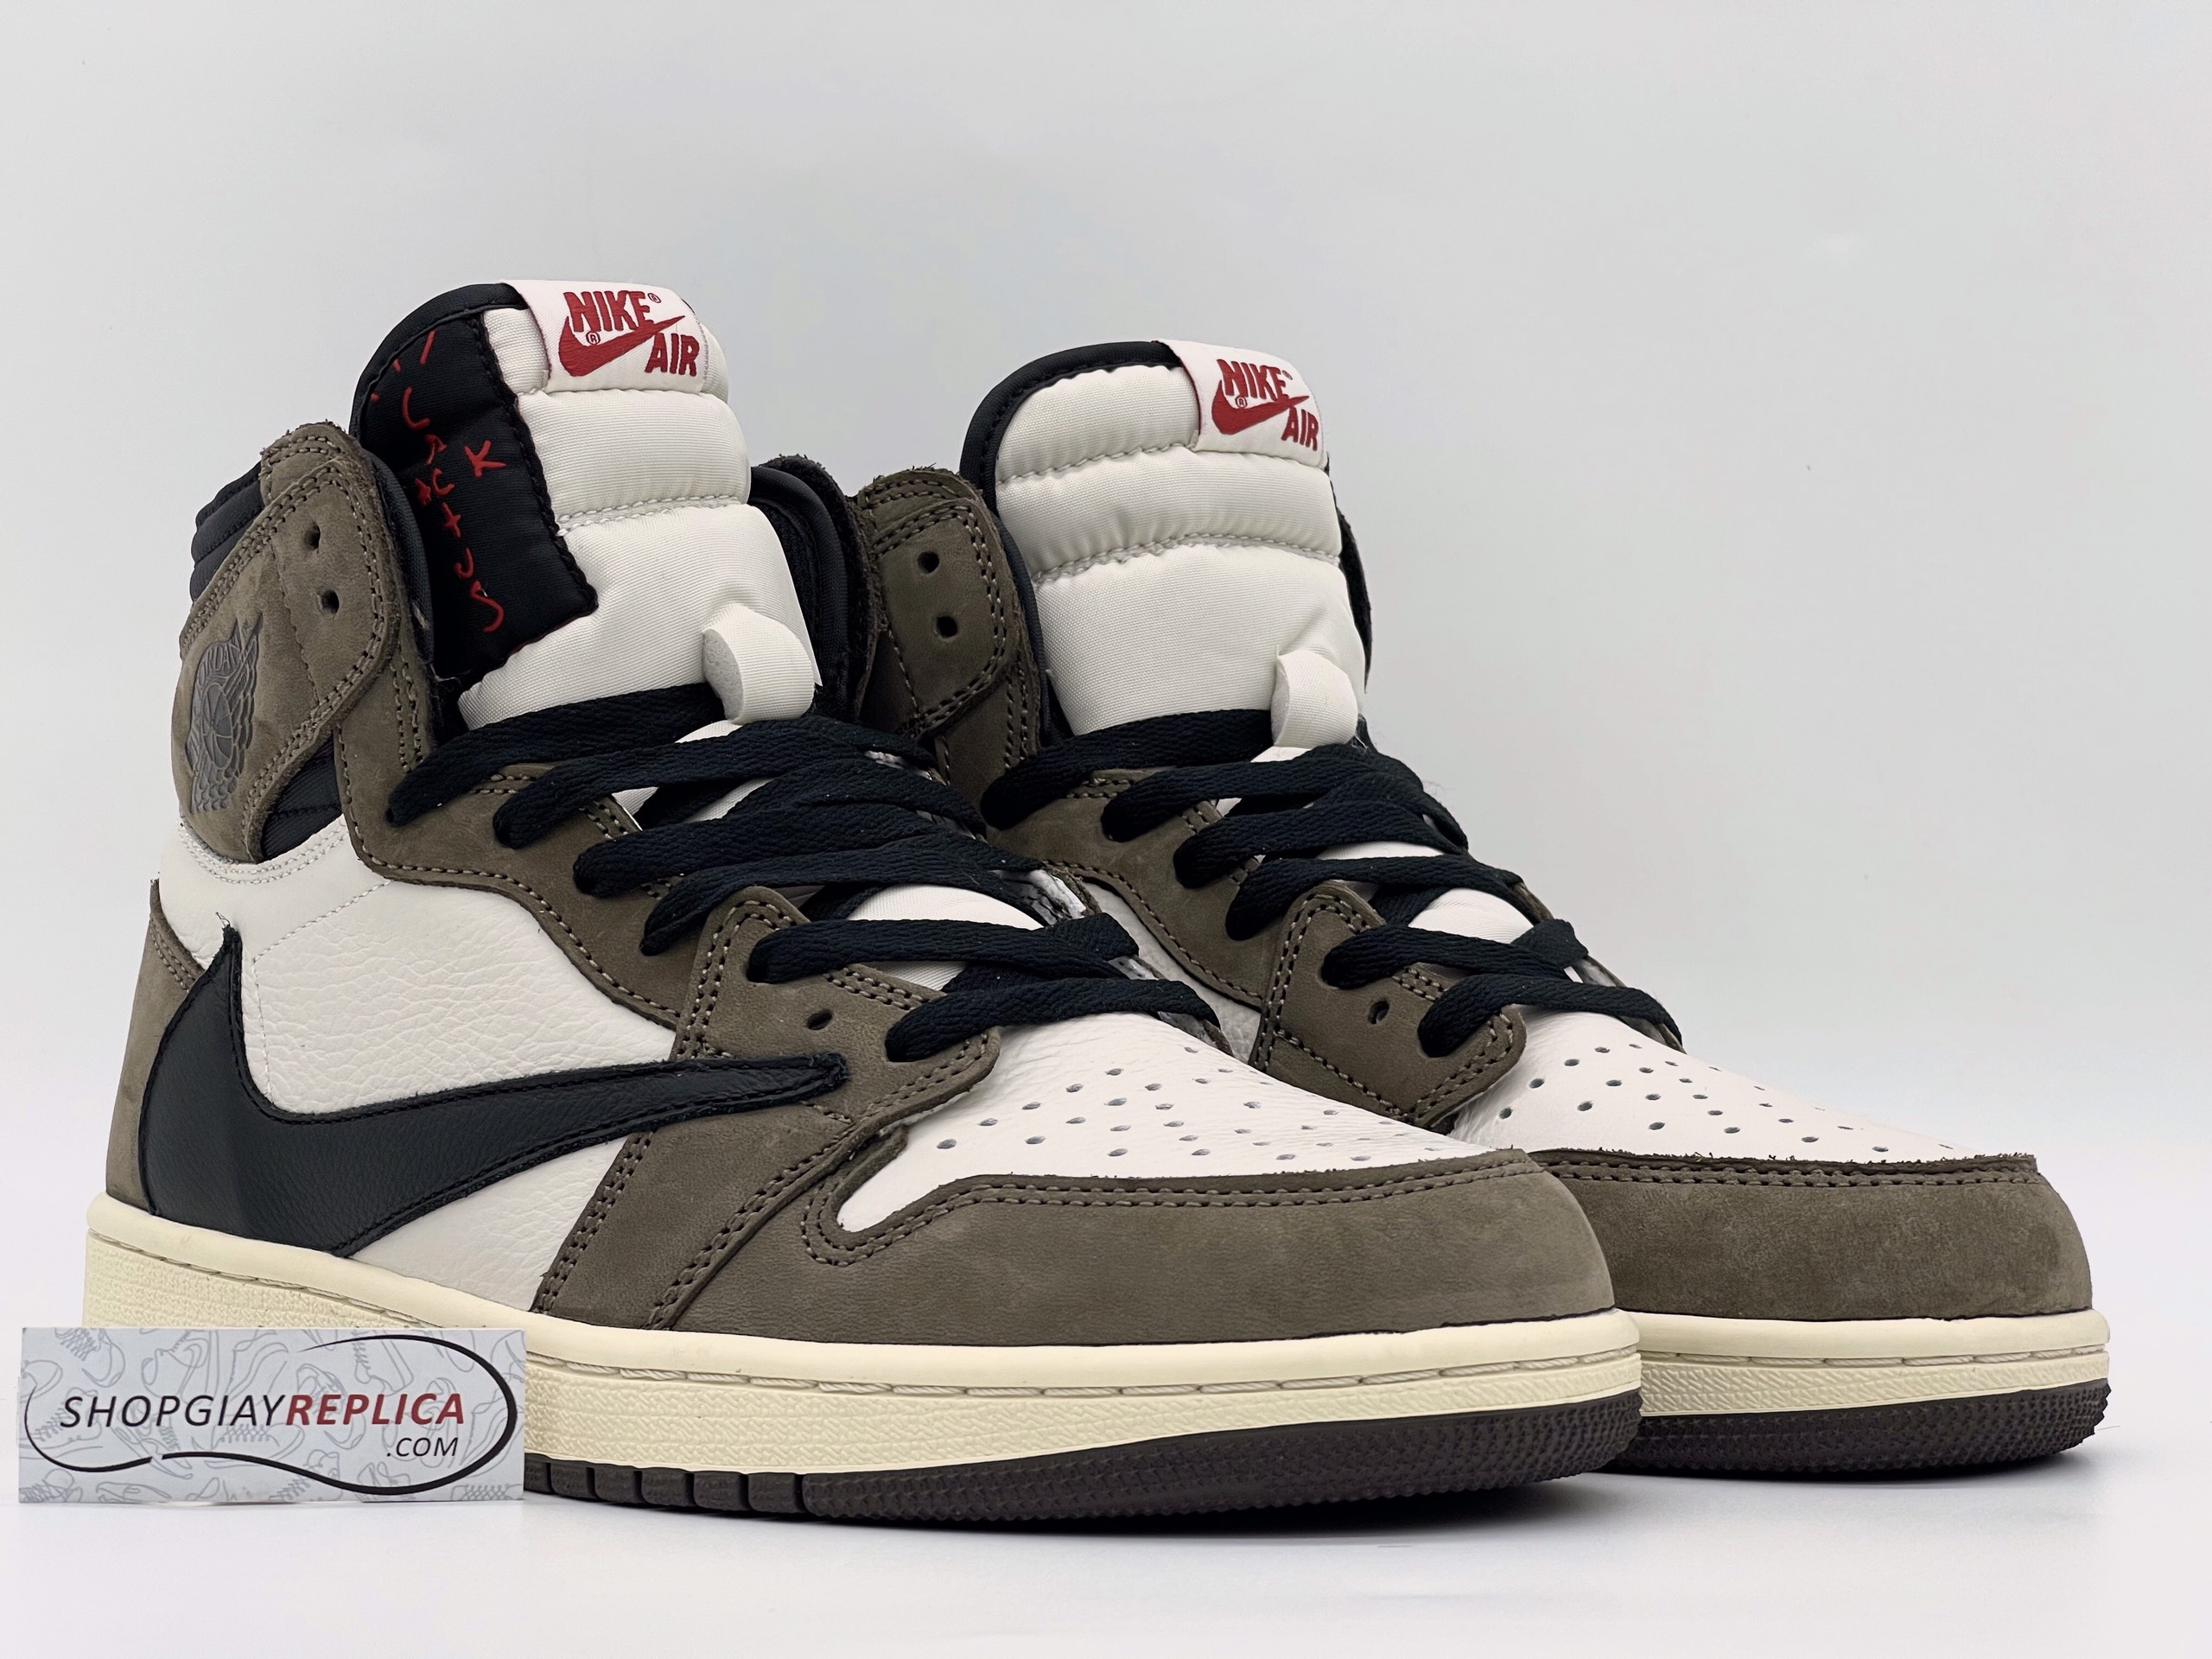 Giày Nike Air Jordan 1 High Travis Scott